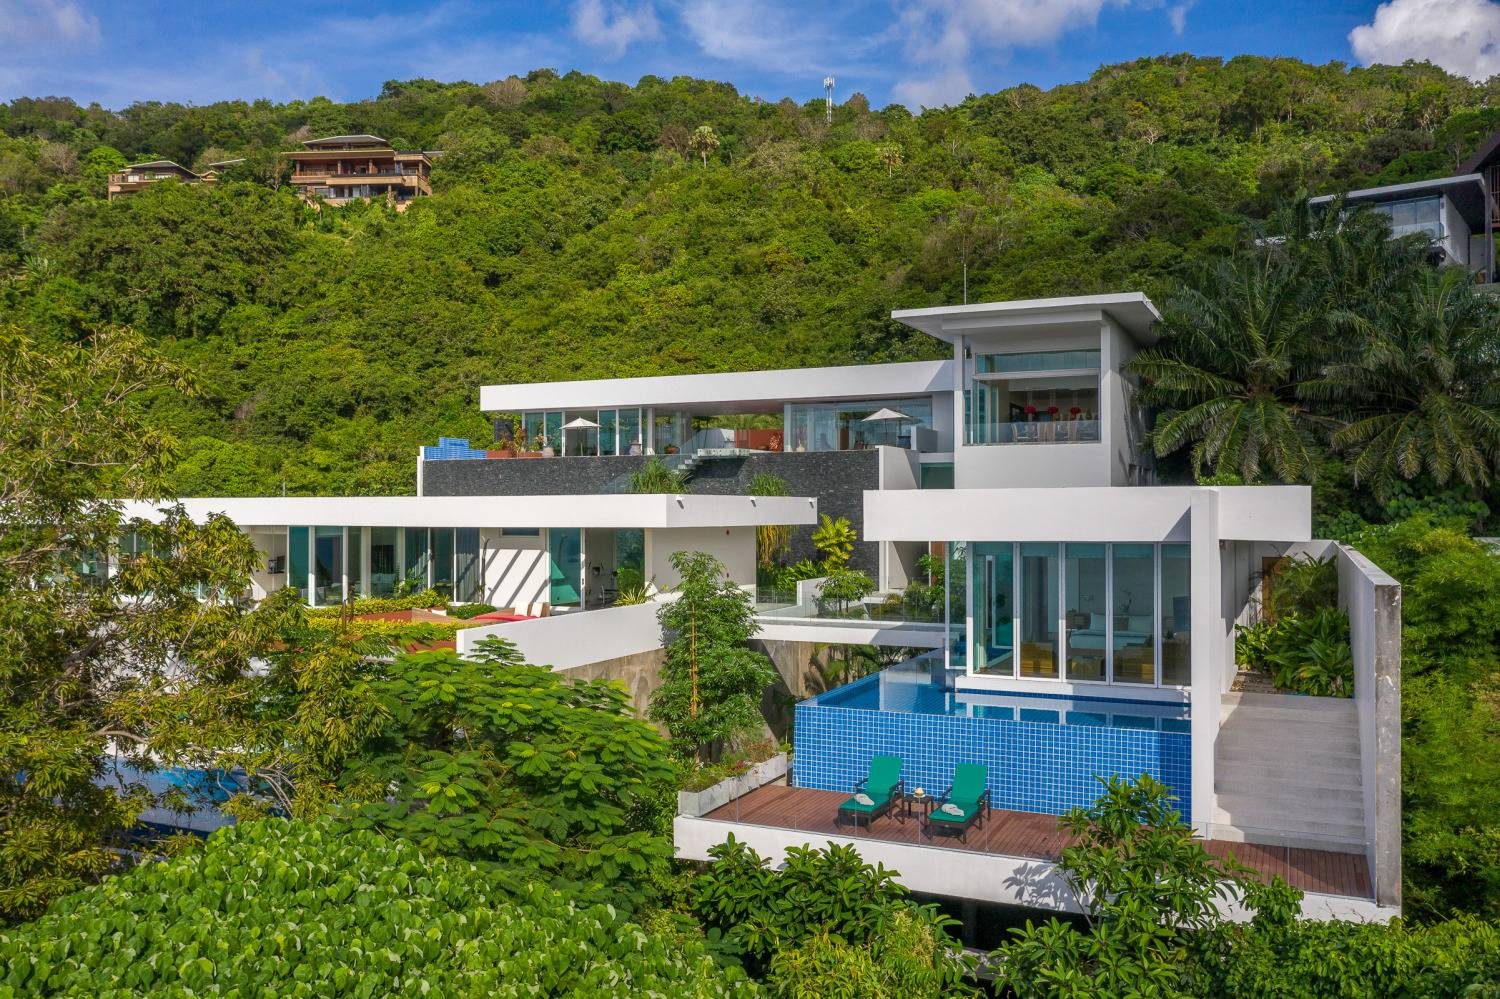 300+ Phuket Luxury Villas | Luxury Holiday Home Rentals - Villa Getaways